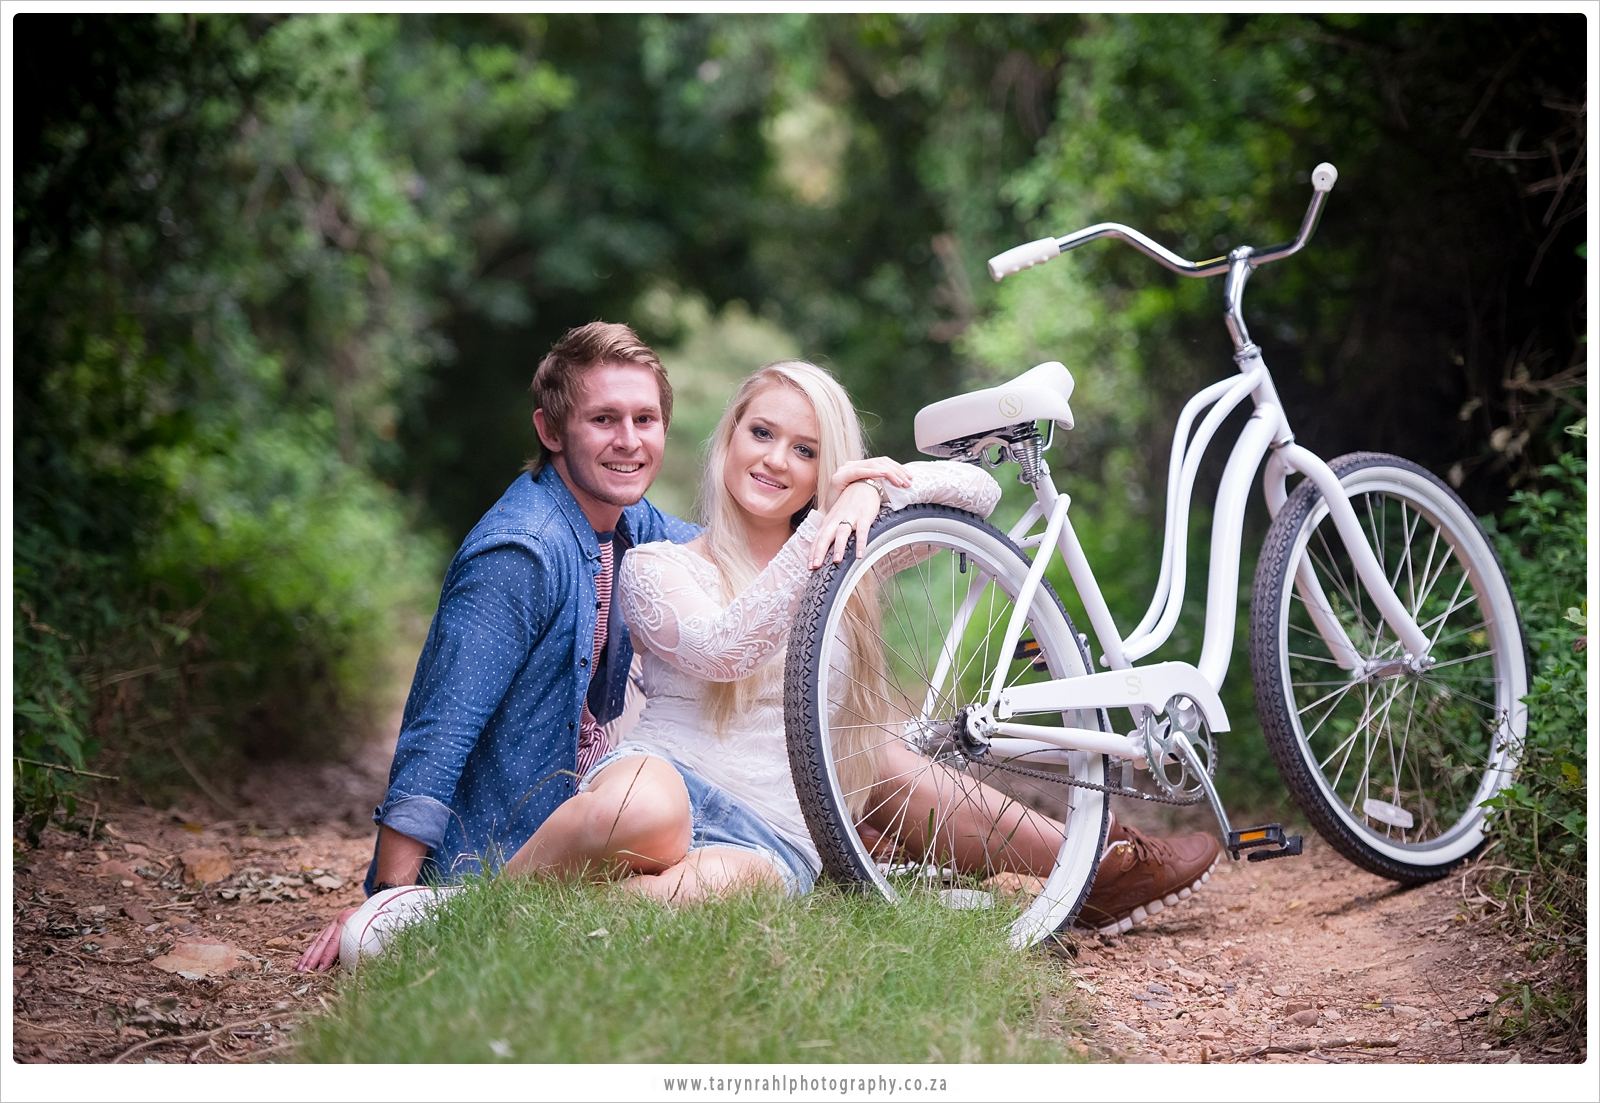 Kirsten and Brent|e-shoot